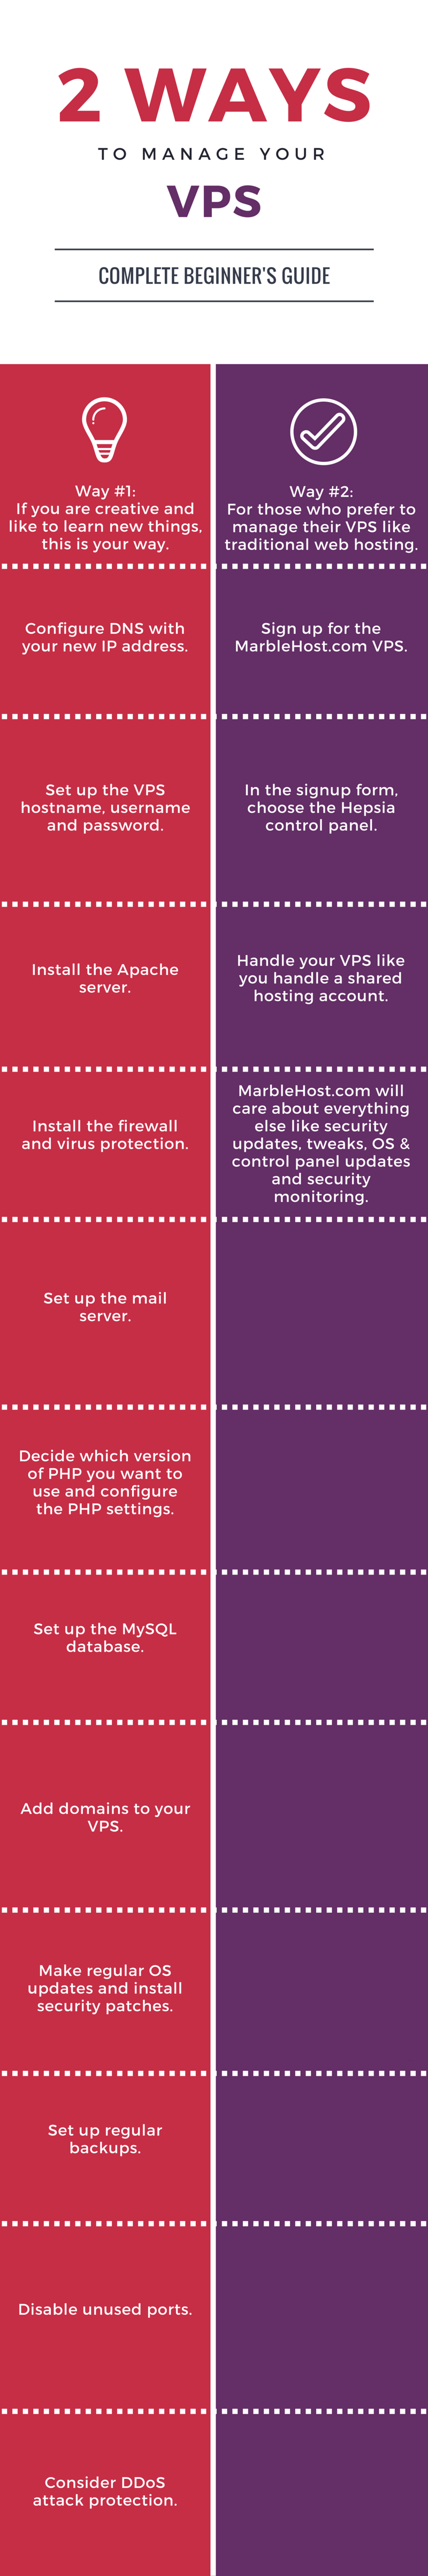 Infographic: 2 ways to manage your own VPS